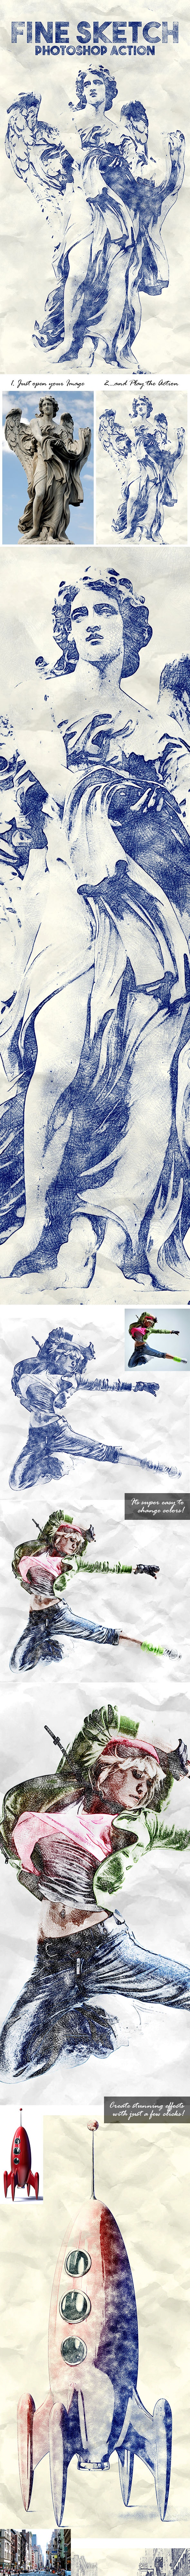 Fine Sketch Photoshop Action - Photo Effects Actions